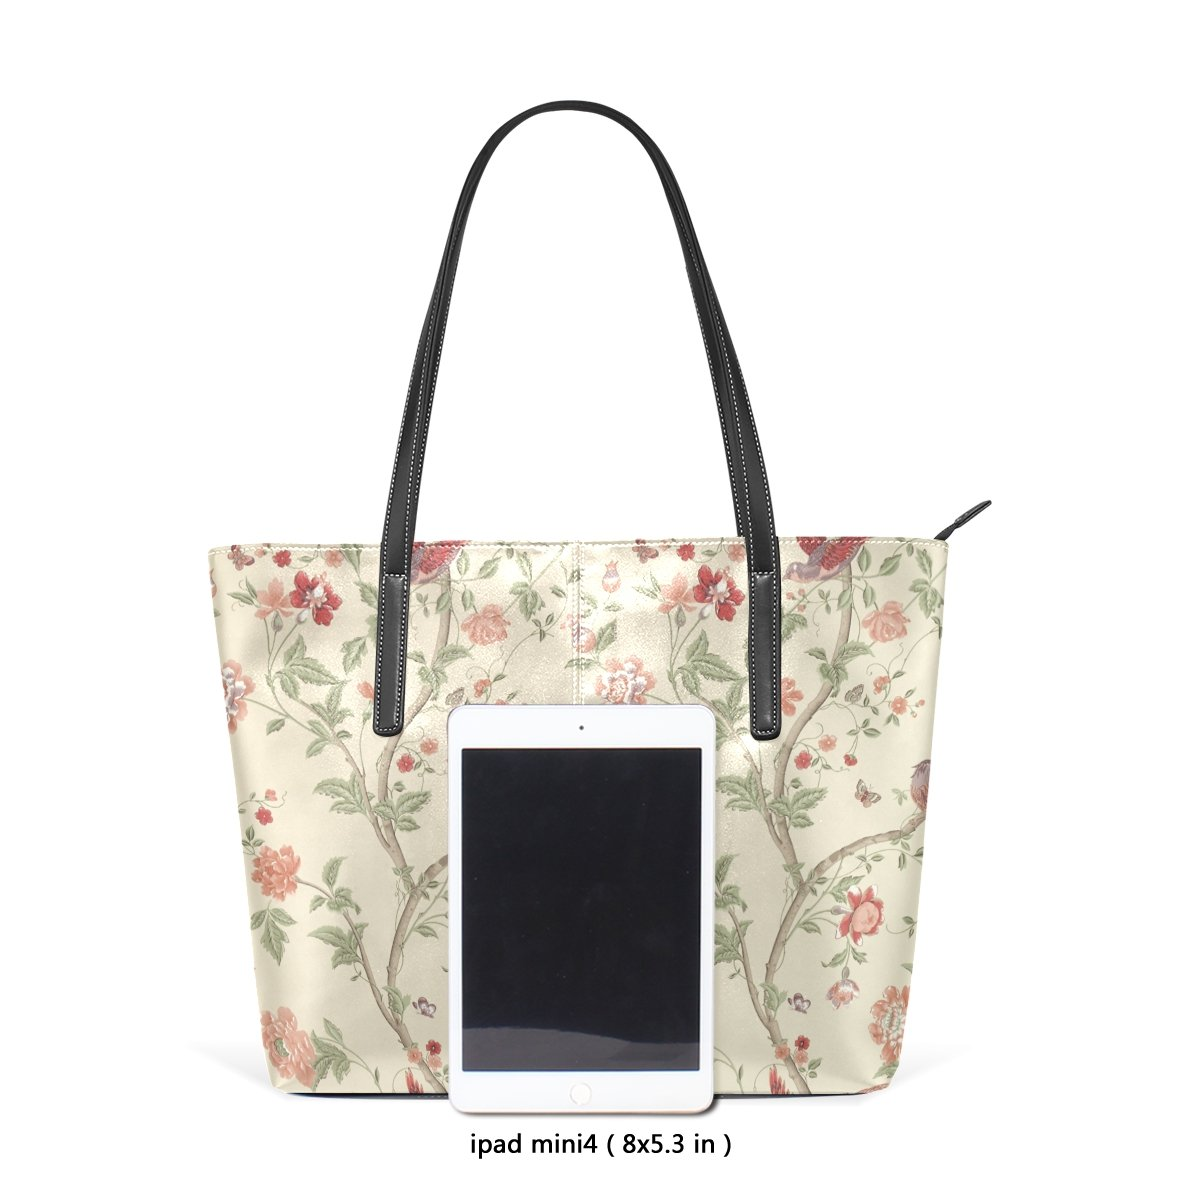 Sunlome Flower Butterfly Pattern Womens Leather Tote Shoulder Bags Handbags